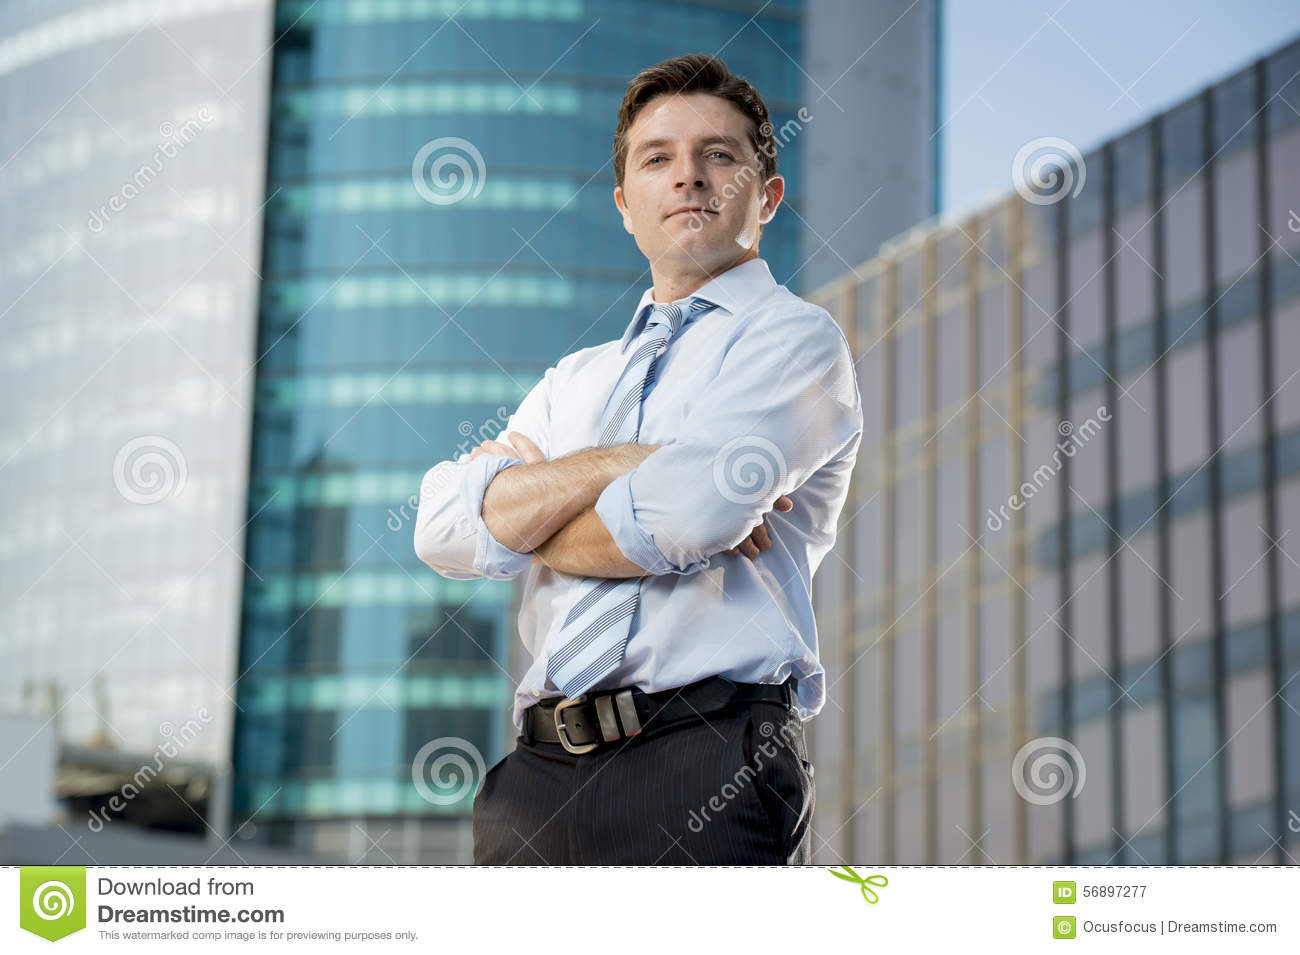 corporate office design themes with Stock Photo Corporate Portrait Attractive Businessman Outdoors Urban Office Buildings Young Shirt Tie Folded Arms Standing Image56897277 on Dark Light Abstract Background in addition mercial Kitchen Floor Plan also Dark Gray Wood Flooring besides Professional Powerpoint Templates further Hero Motocorp Garden Factory And Global Parts Center.